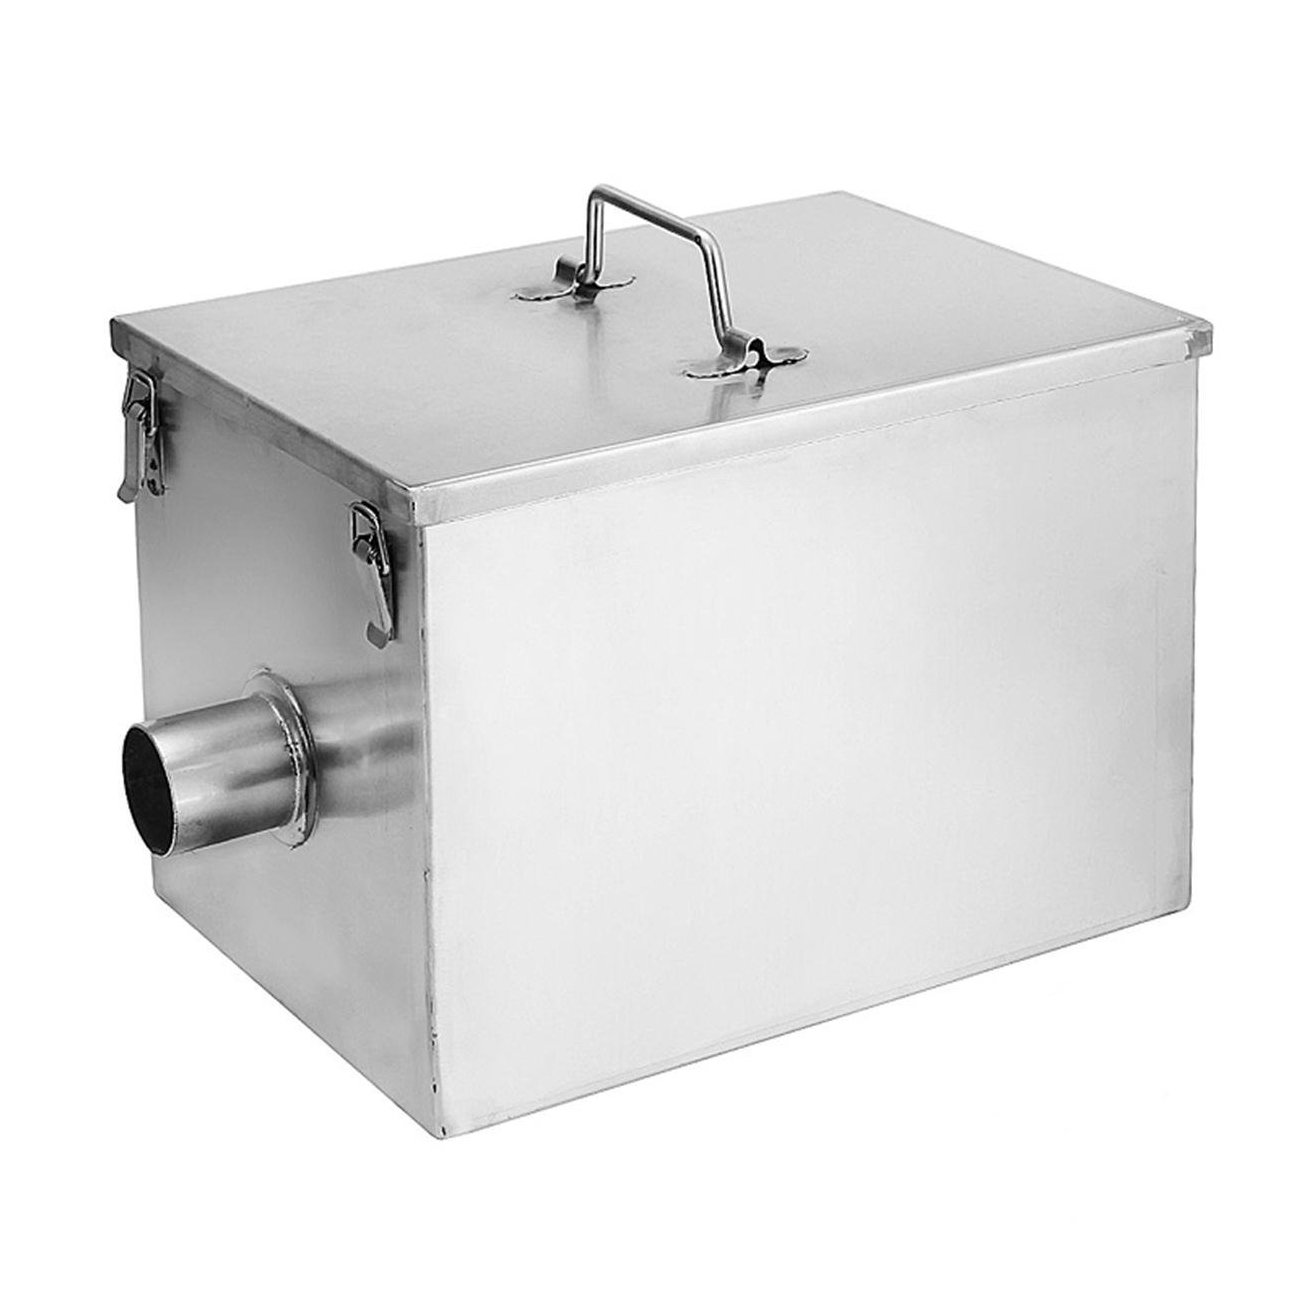 BEAMNOVA 8lbs Commercial Grease Trap 5GPM Gallons Per Minute Stainless Steel Interceptor for Restaurant Kitchen